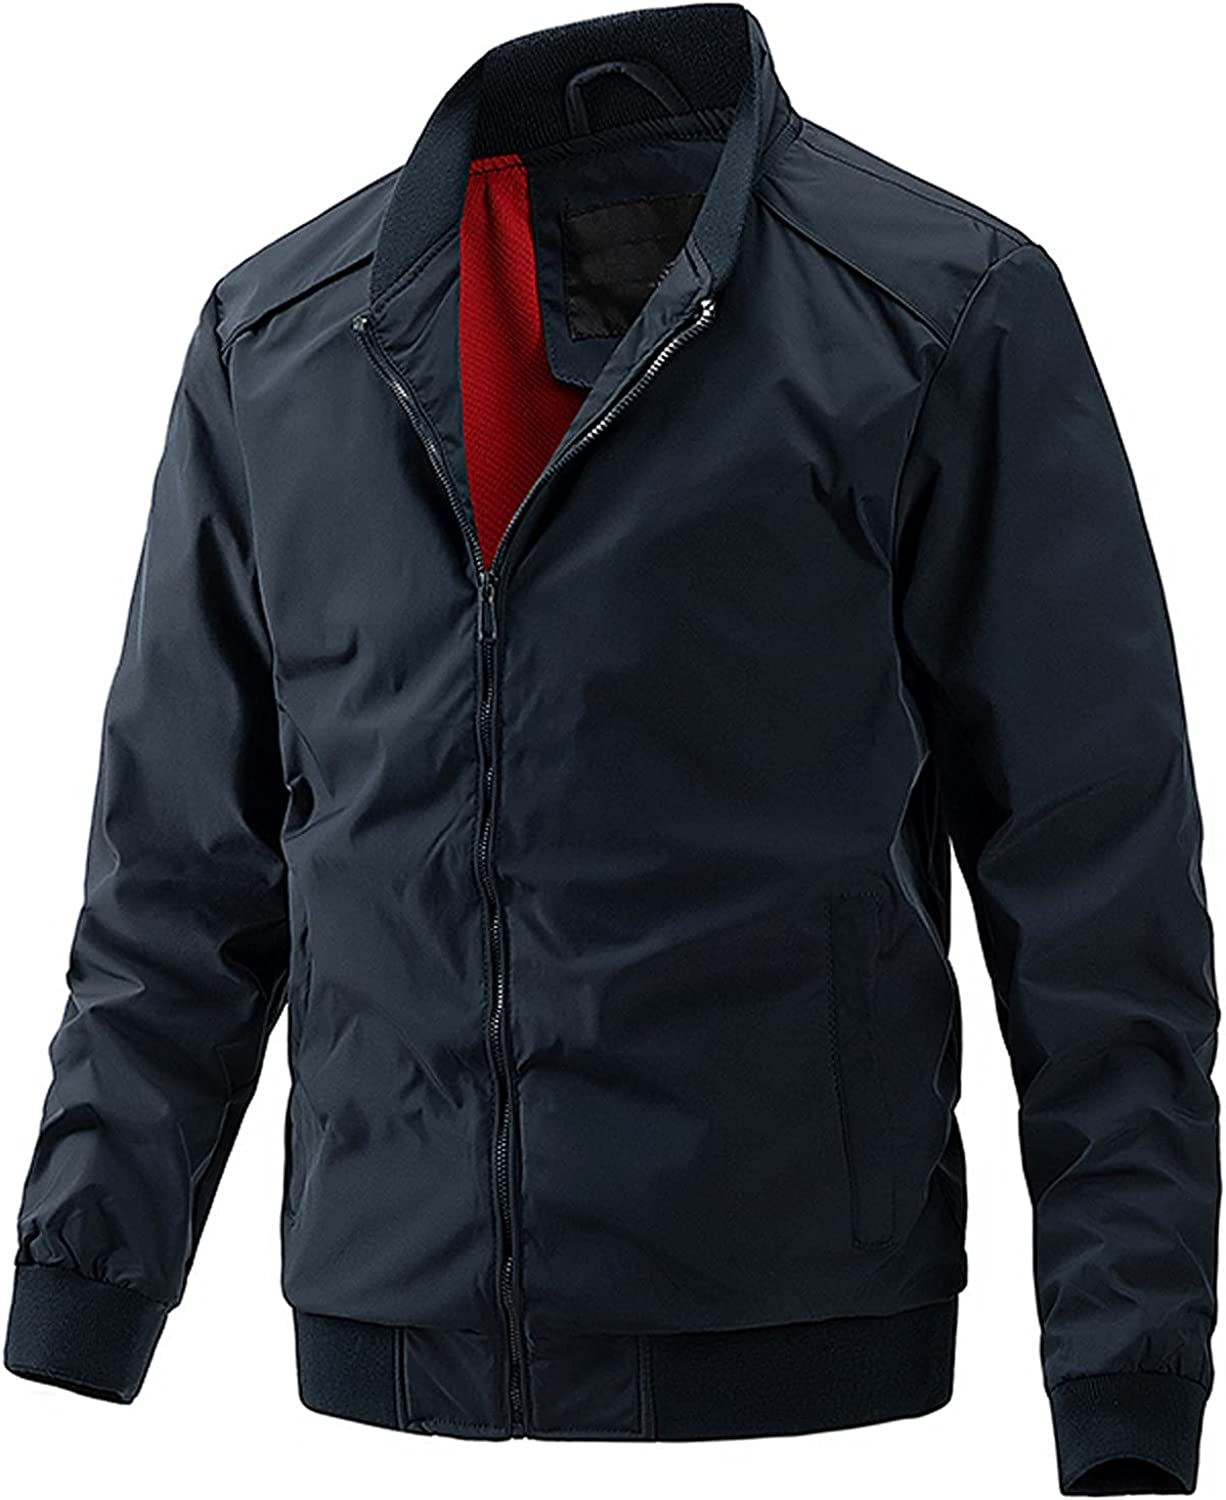 Bomber Tactical Jacket for Mens Lightweight Western Casual Long Sleeve Full Zip Jacket Outwear